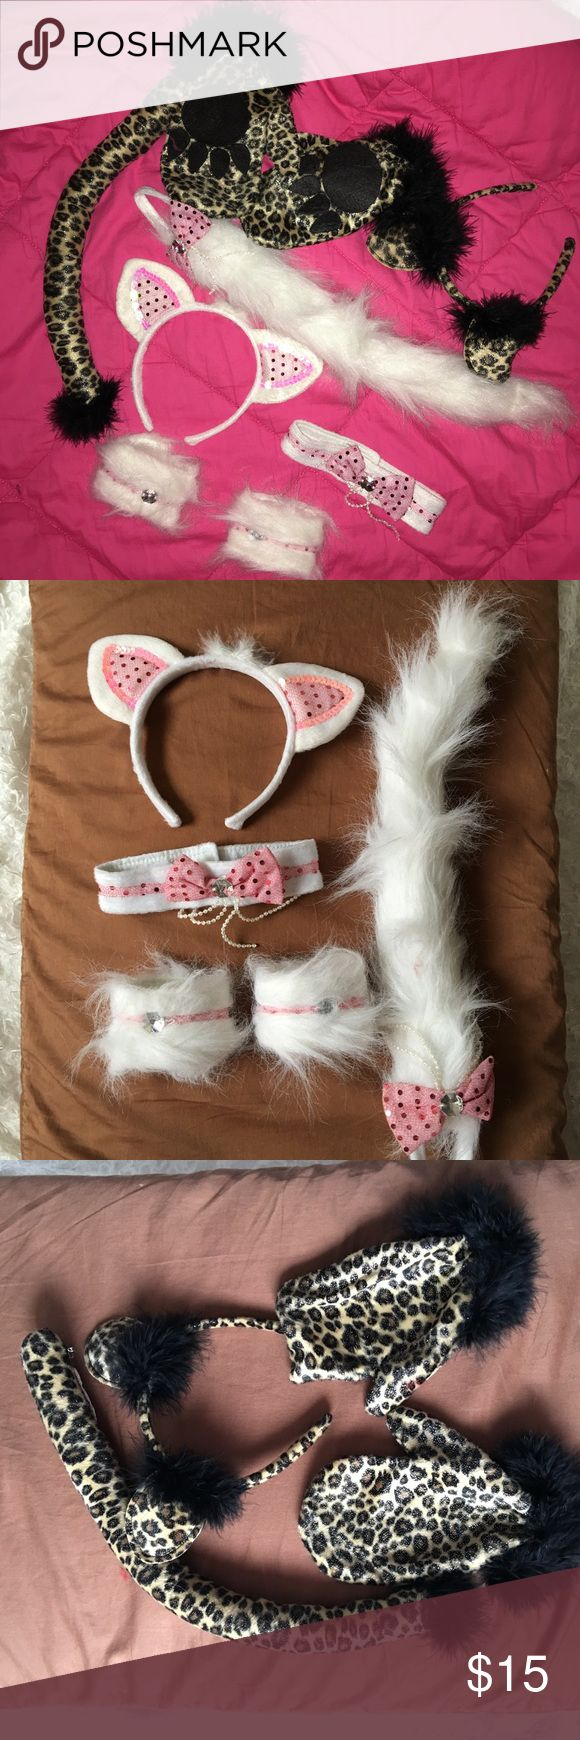 🎃SALE🎃 Bundle 2 set halloween costume accessorie Leopard cat,tail mittens and earpiece.  white and pink cat costume ,tail, earpiece, neck choker and  pair of cuff for the wrist . Never used None Costumes Halloween